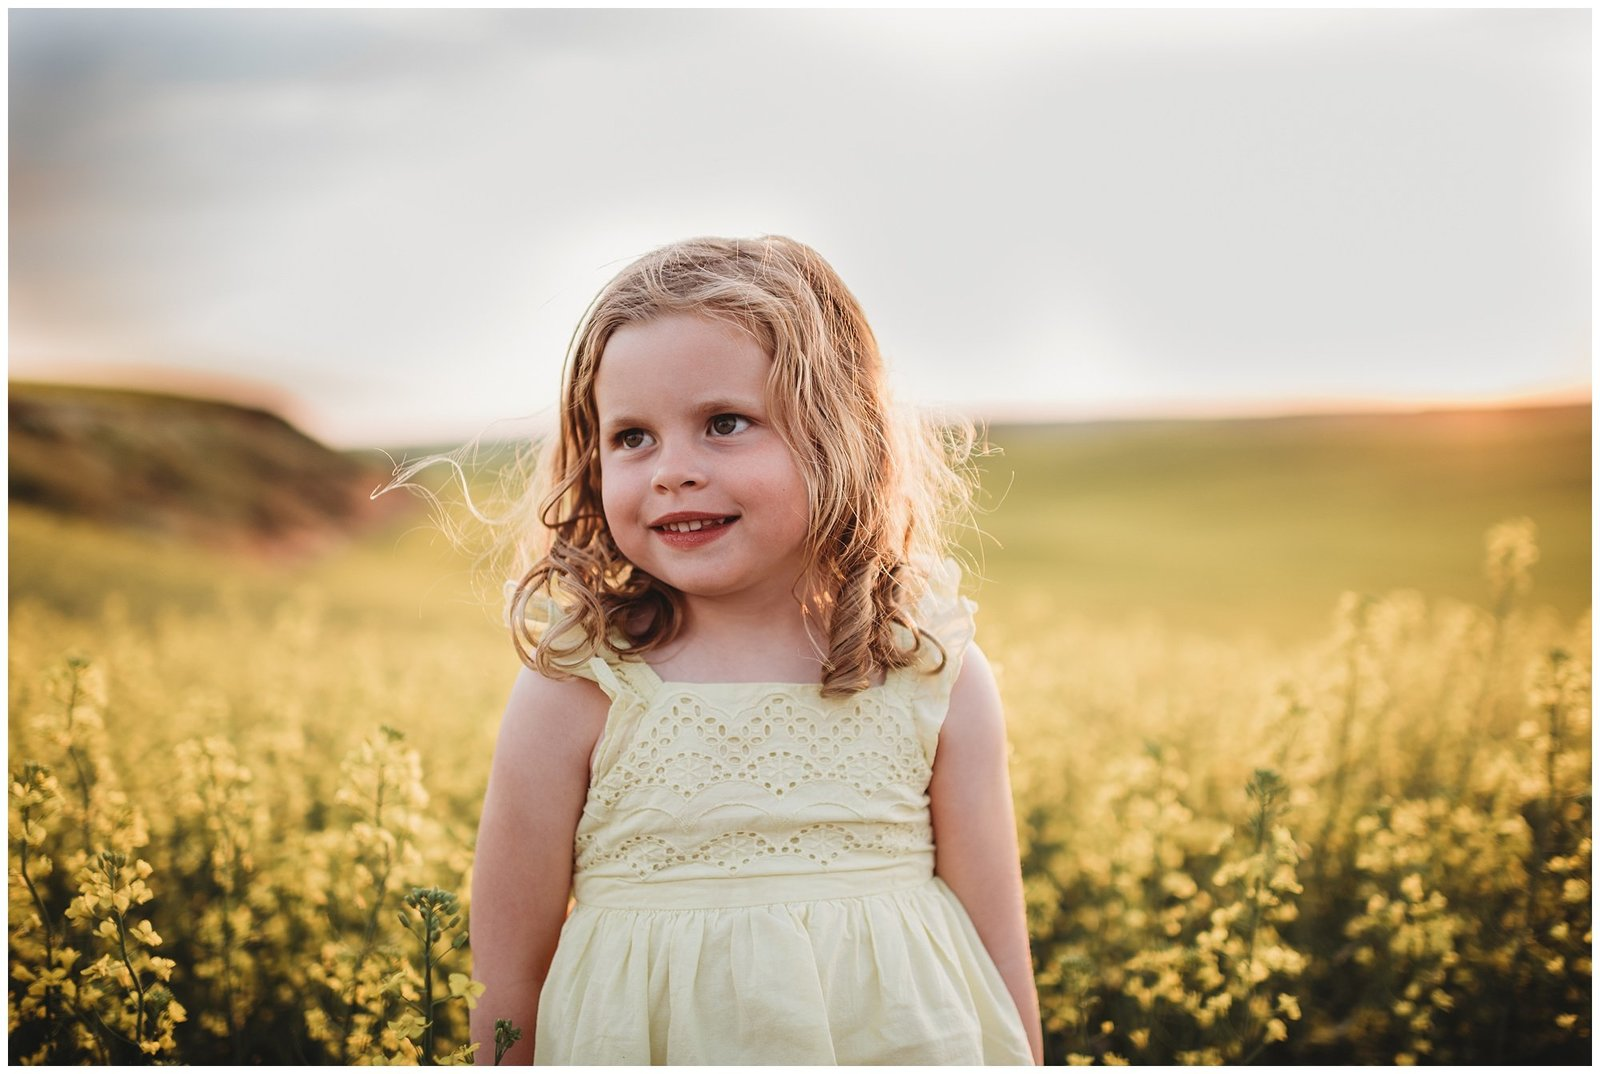 blonde curly hair girl in yellow dress in field of yellow flowers at sunset Emily Ann Photography Seattle Family Photographer